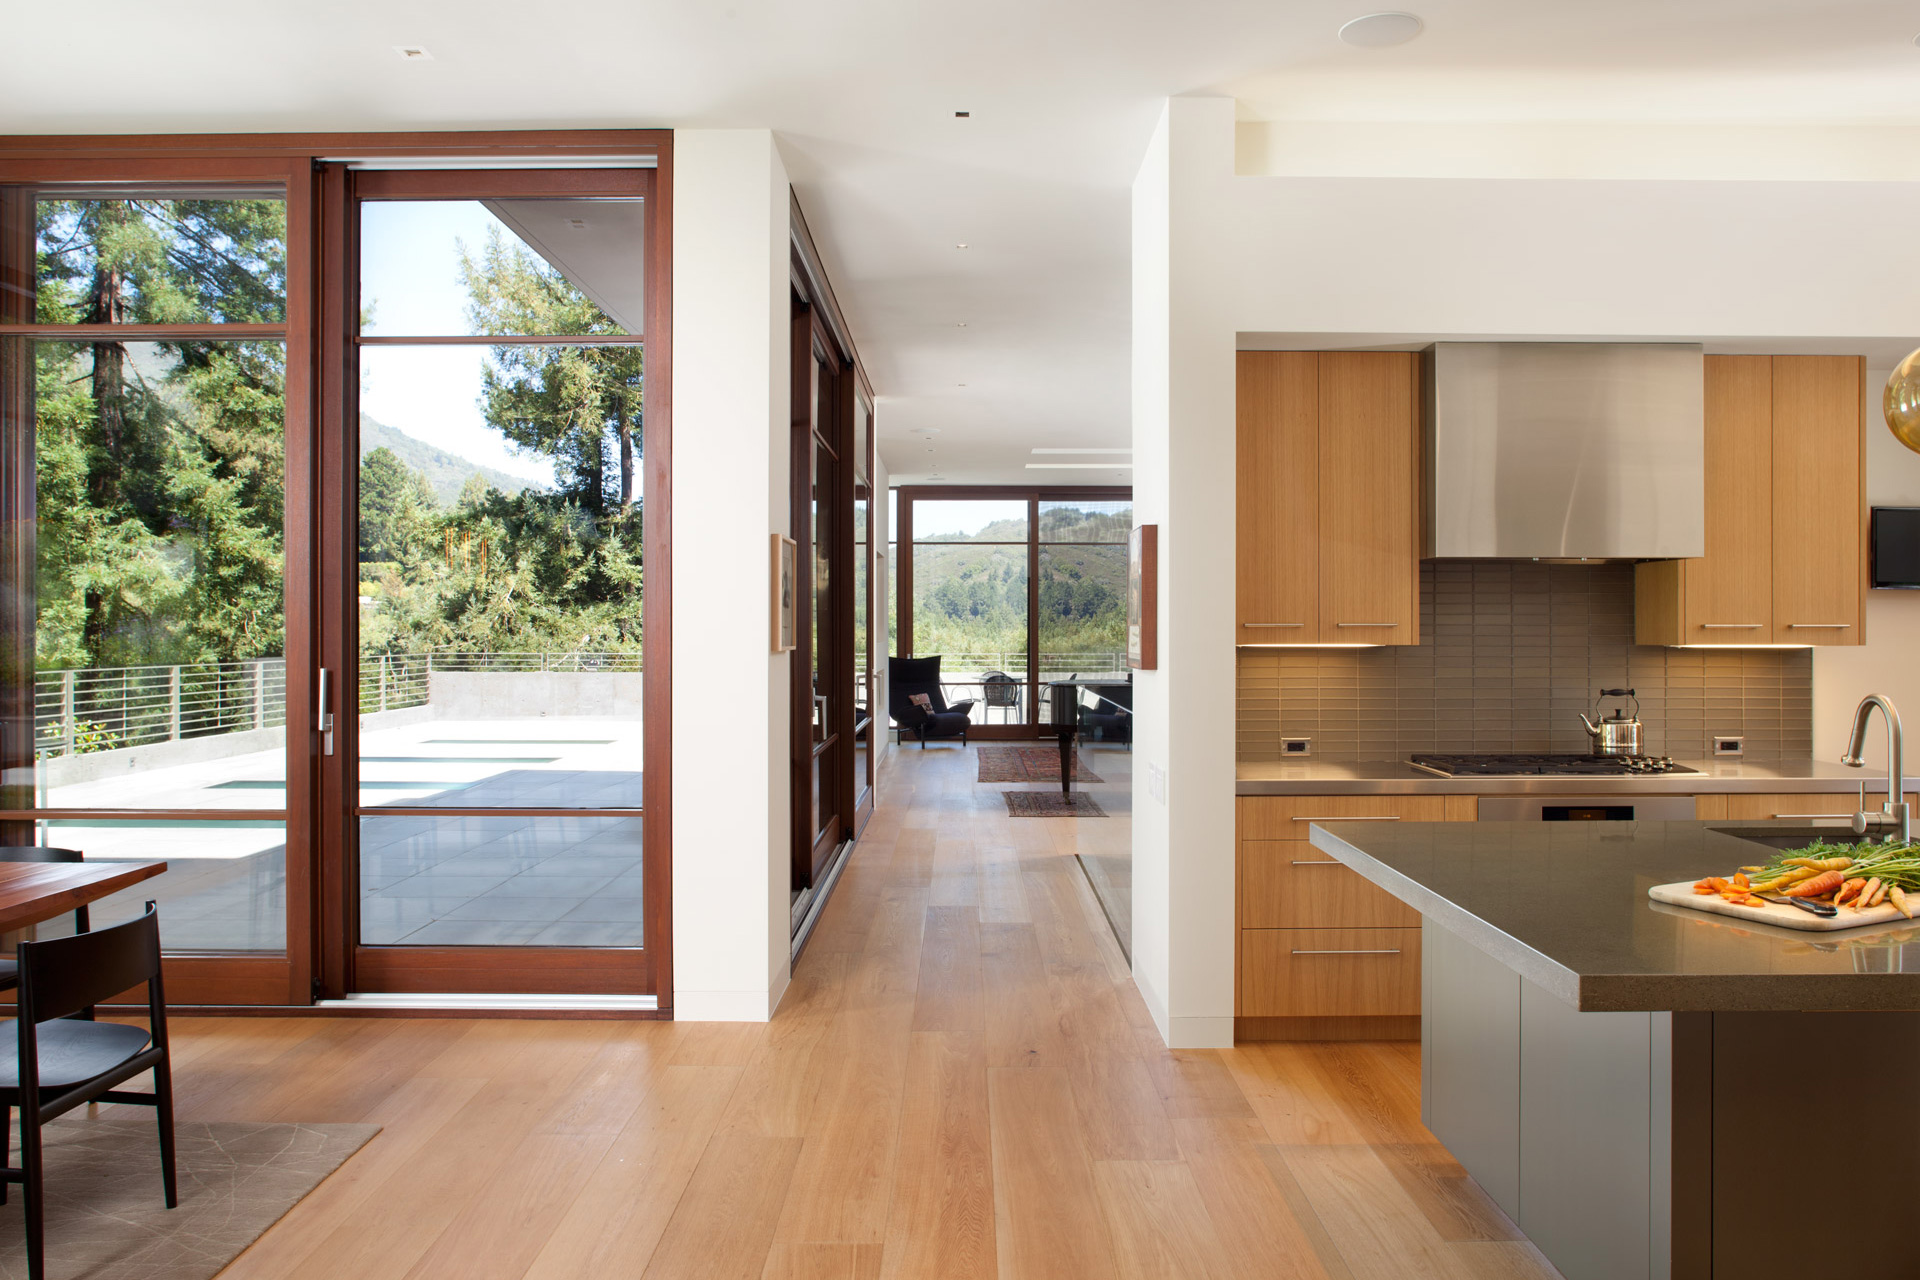 Mill Valley Residence houses